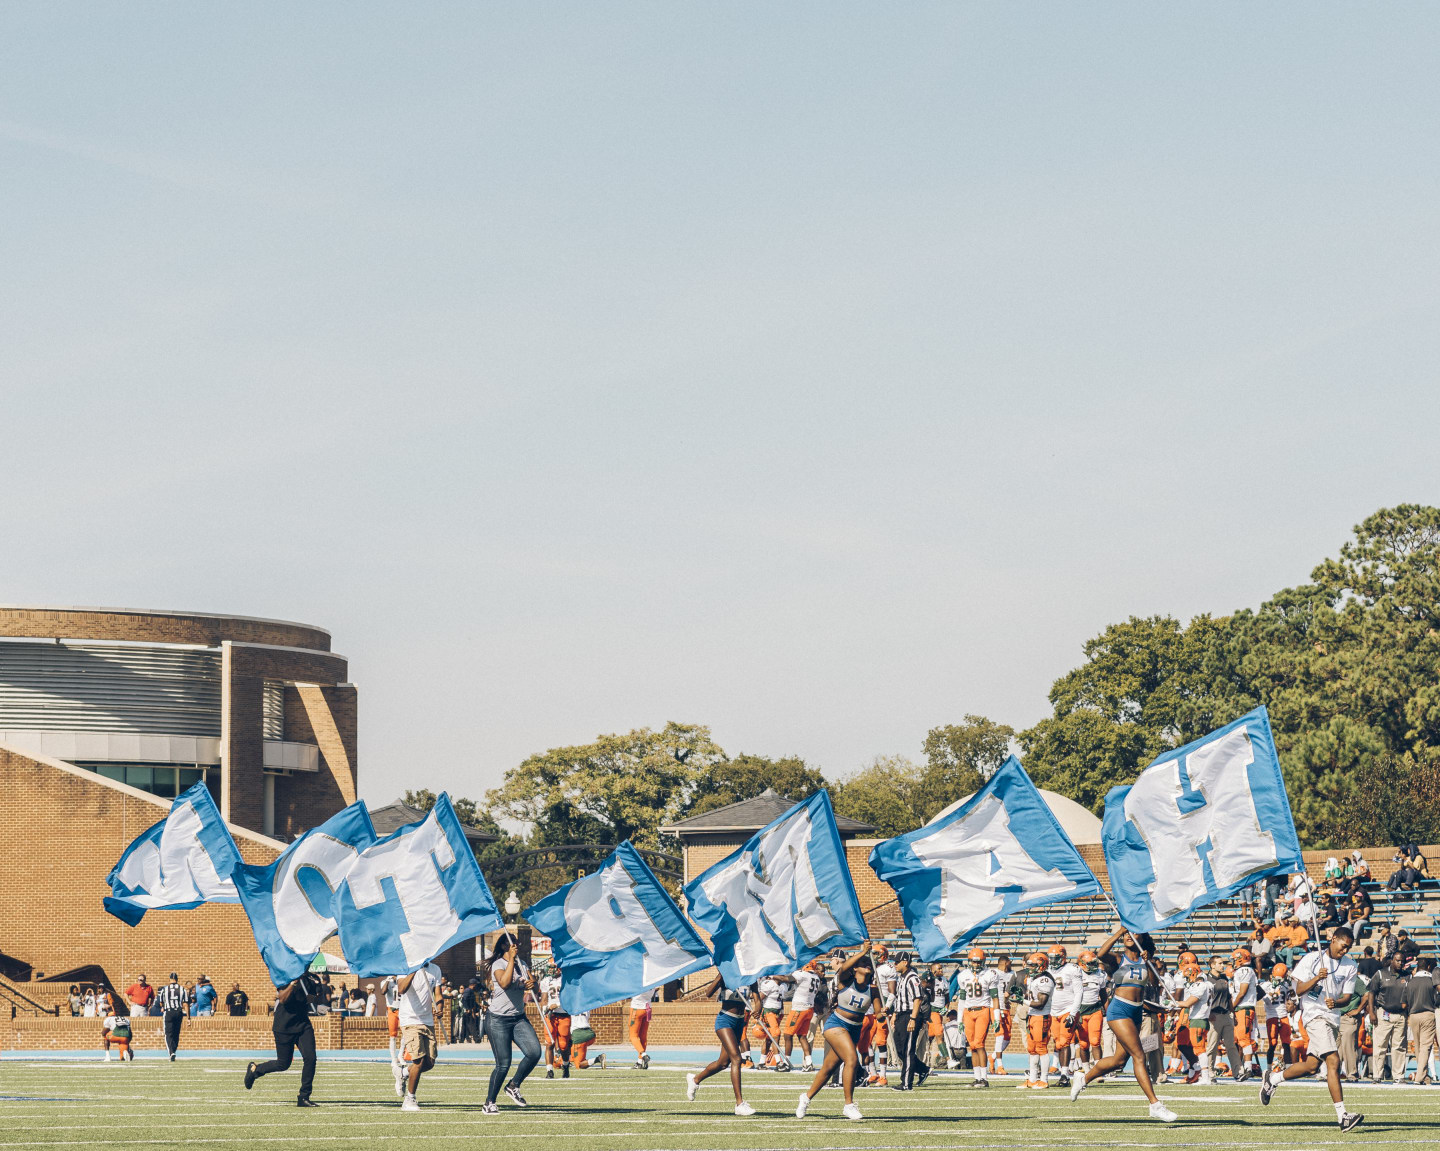 Homecoming: Where else does this spirit exist?